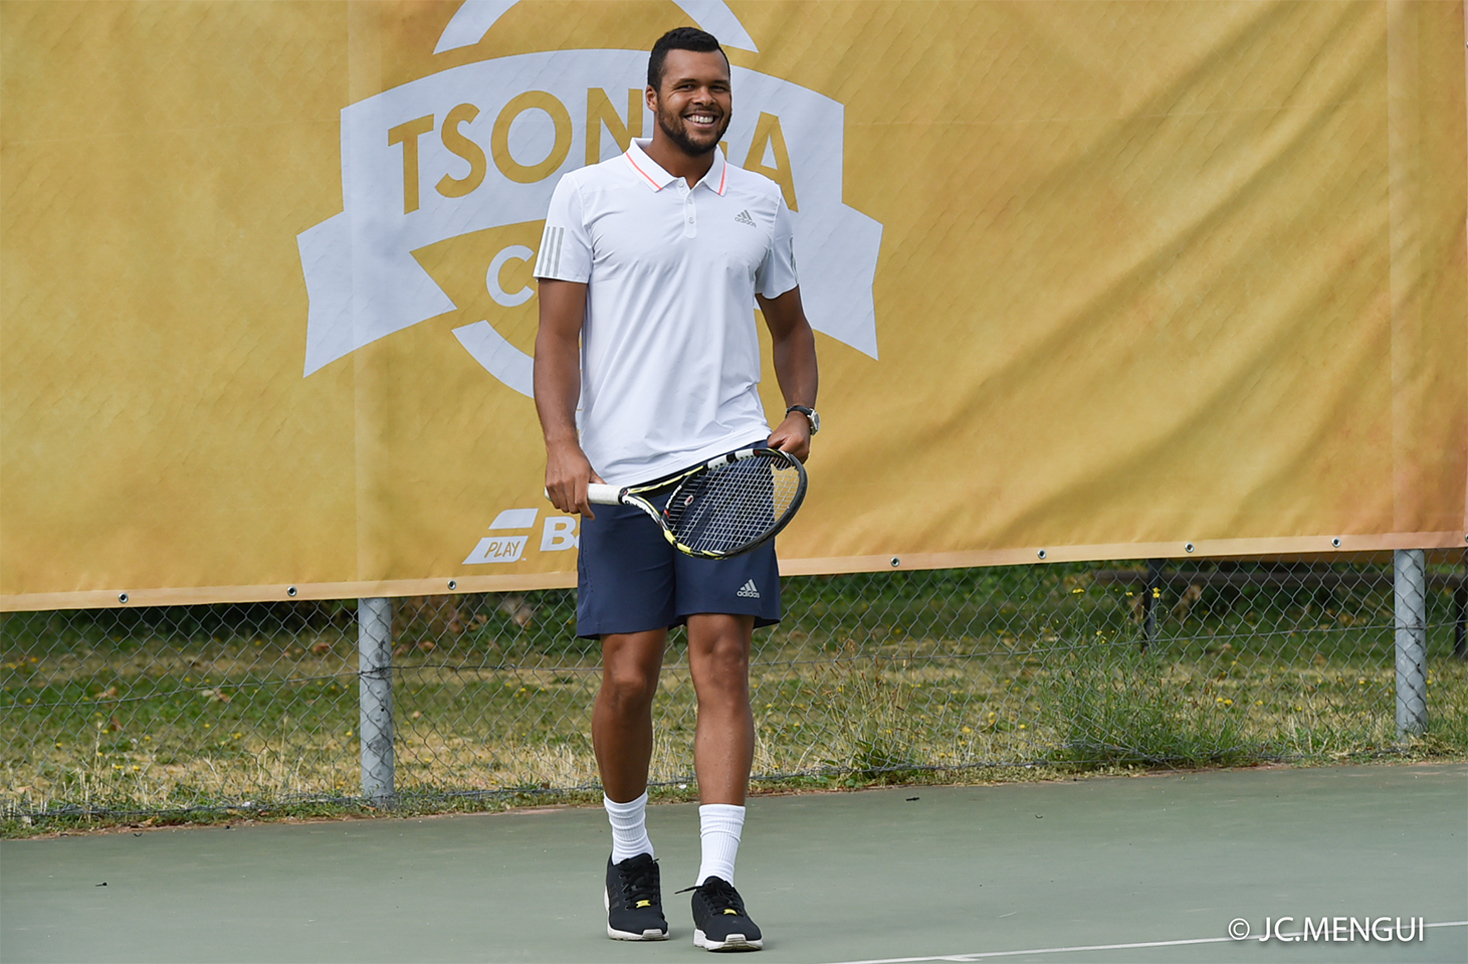 Tsonga playing tennis at his Tsonga camp behind the logo with Babolat in Lyon